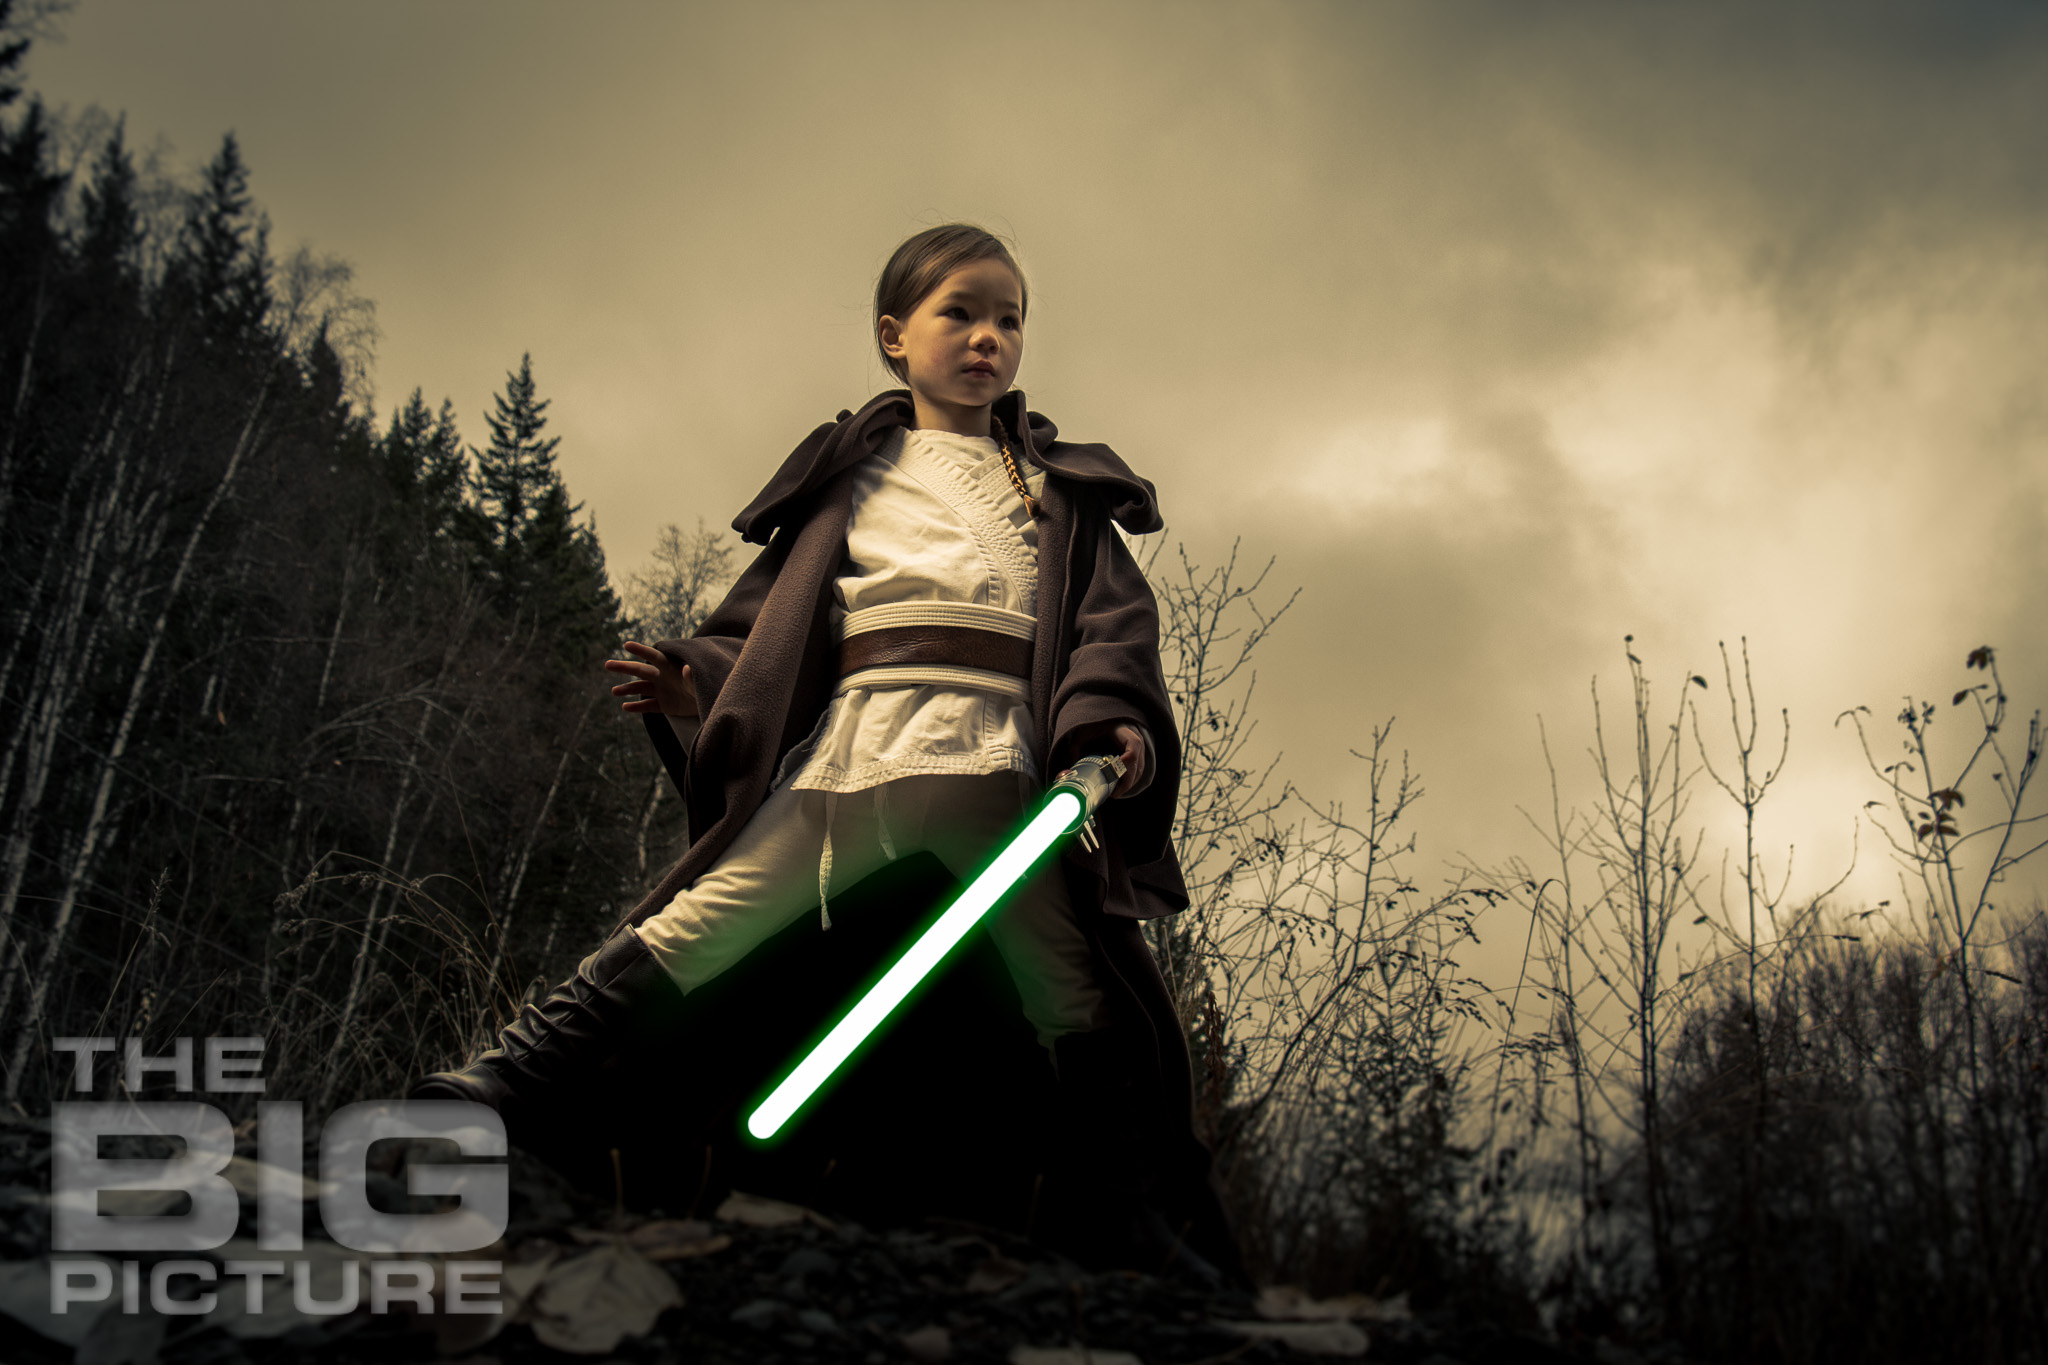 jade-jedi-padawan-epic-child-photography